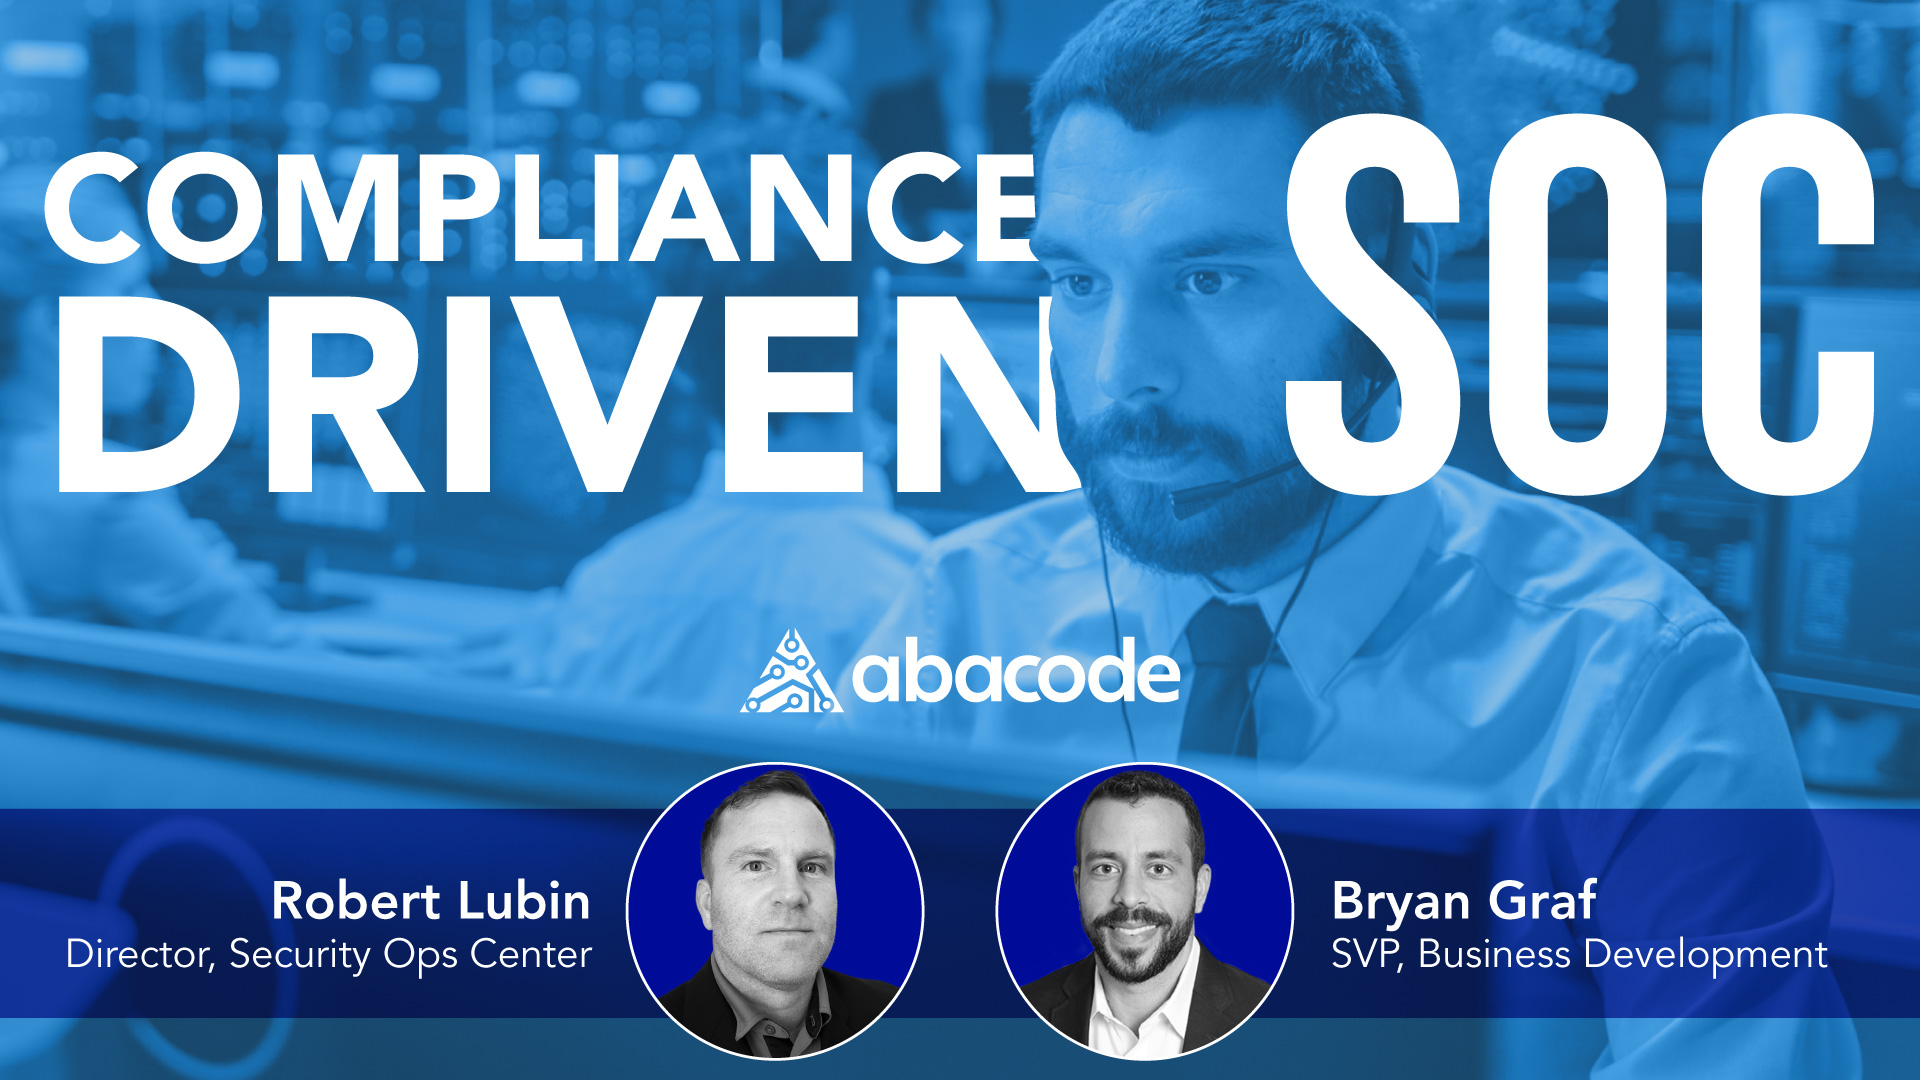 Abacode Events: Compliance Driven SOC - Using SIEM and SOC to Comply With Controls